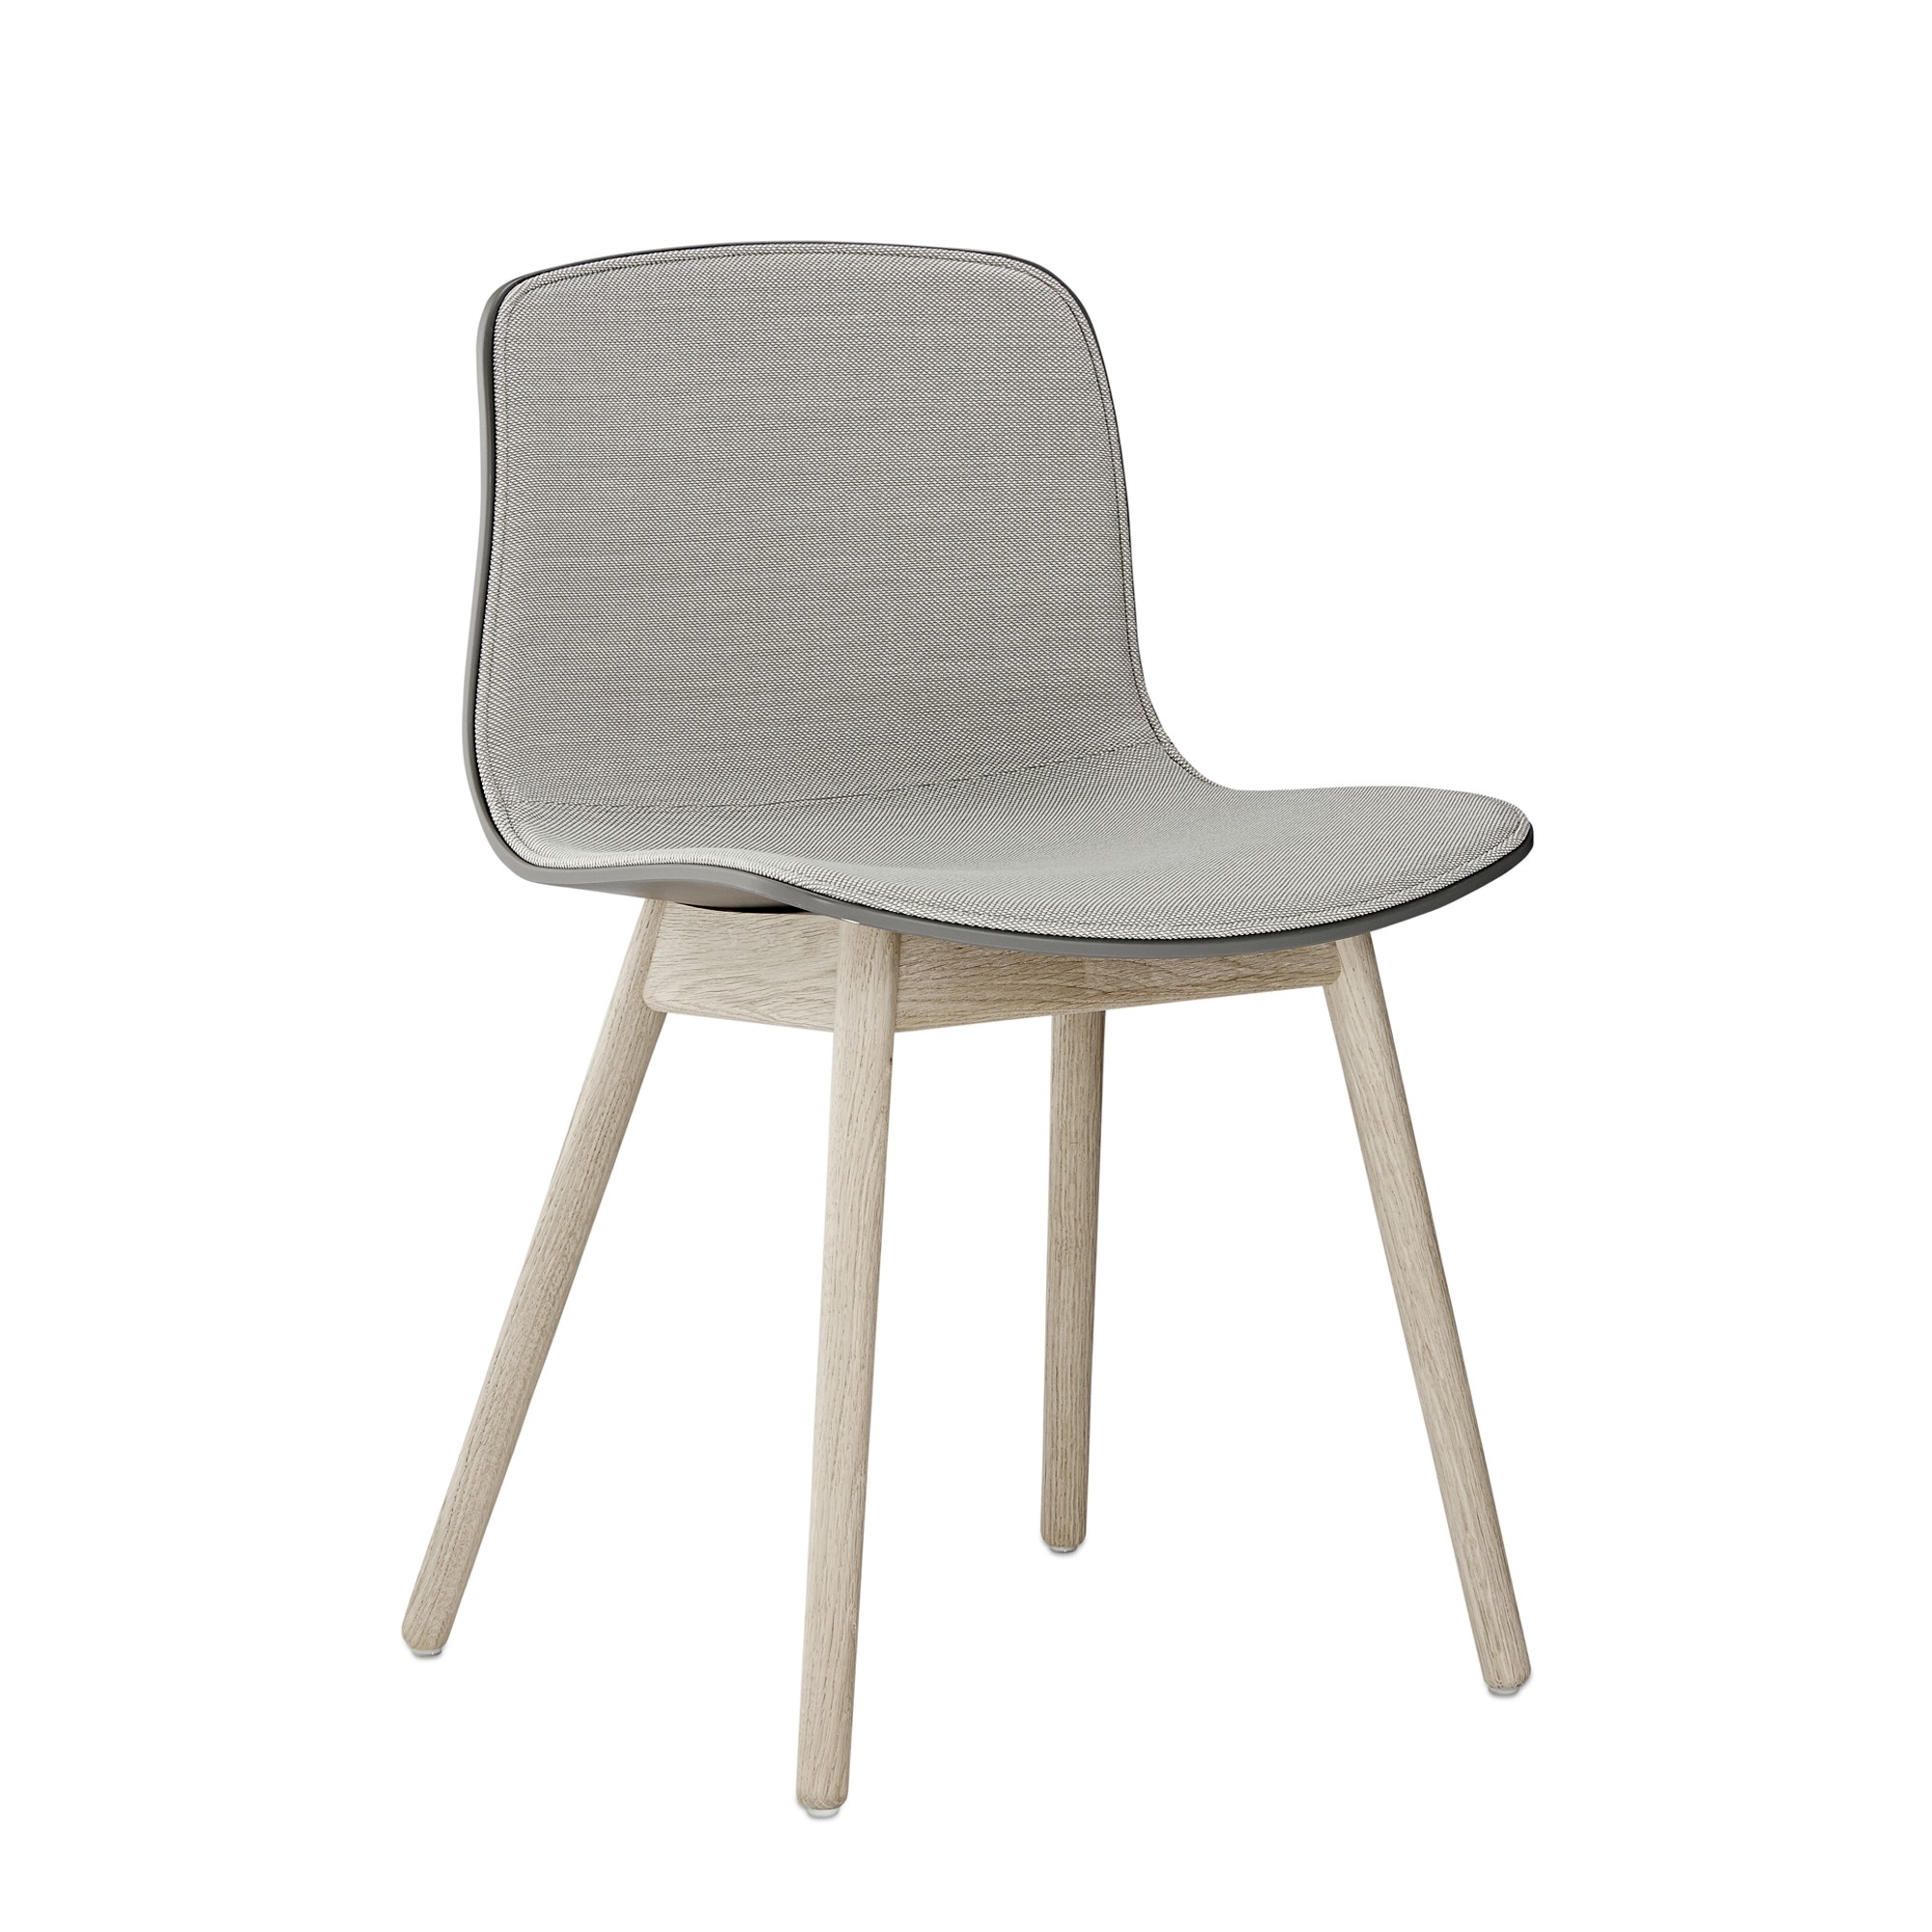 About A Chair 12 Side Chair.Aac 12 Upholstered With Kvadrat Fabric And Wood Base Hay